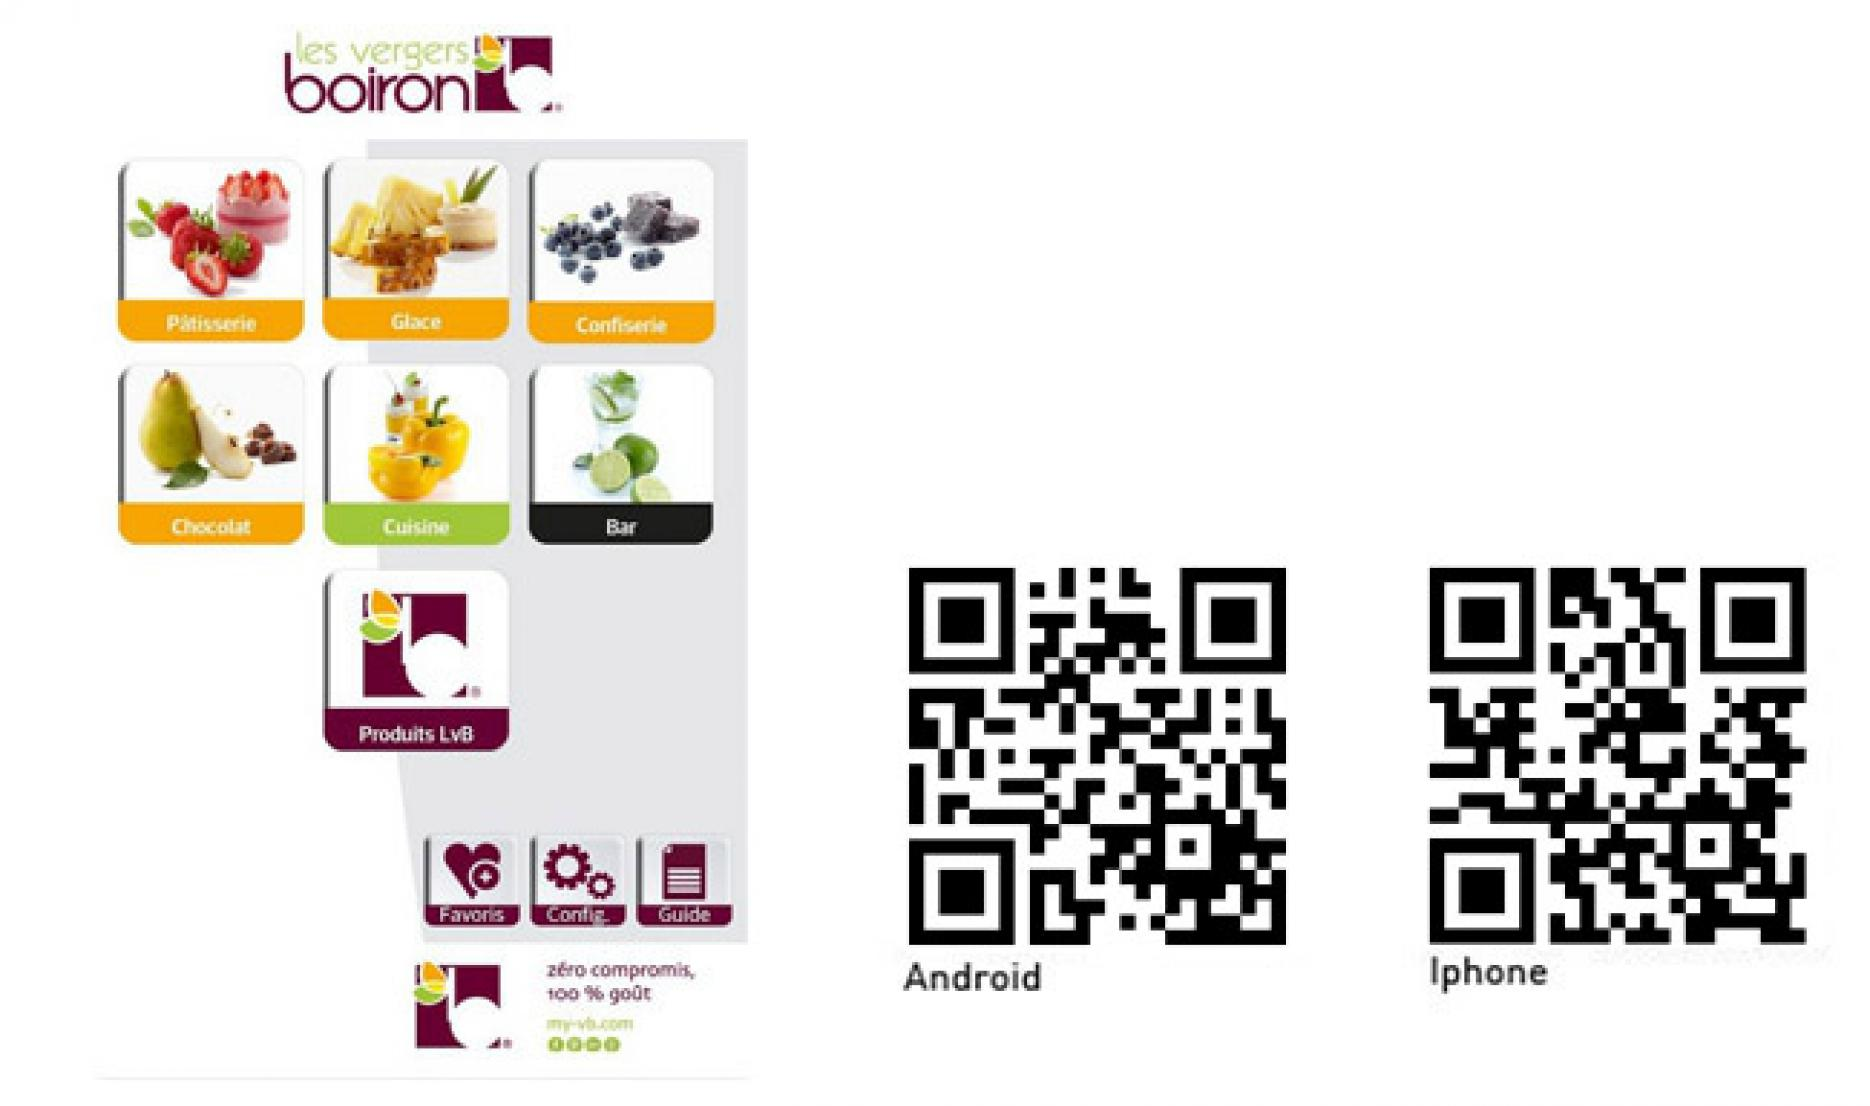 Les vergers Boiron mobile application: A 100% practical application for Pastry Chefs, Chefs and Barmen.